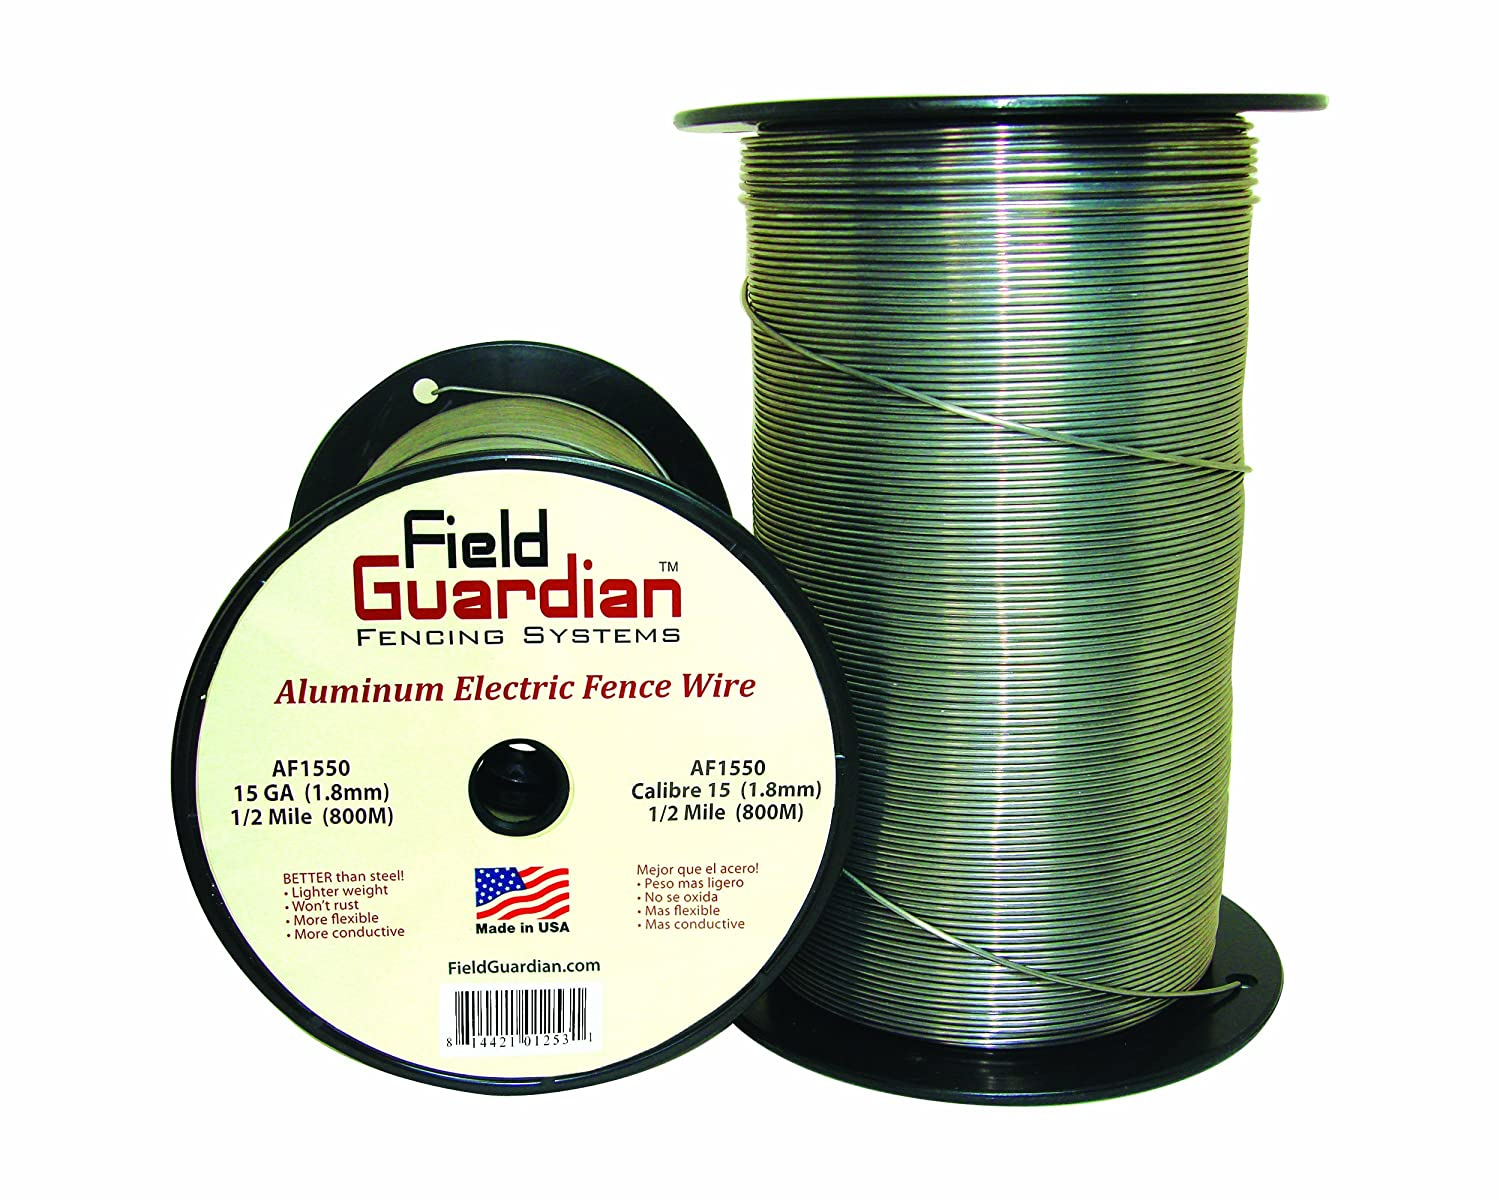 Field Guardian 15-Guage Aluminum Wire, 1 2 Miles